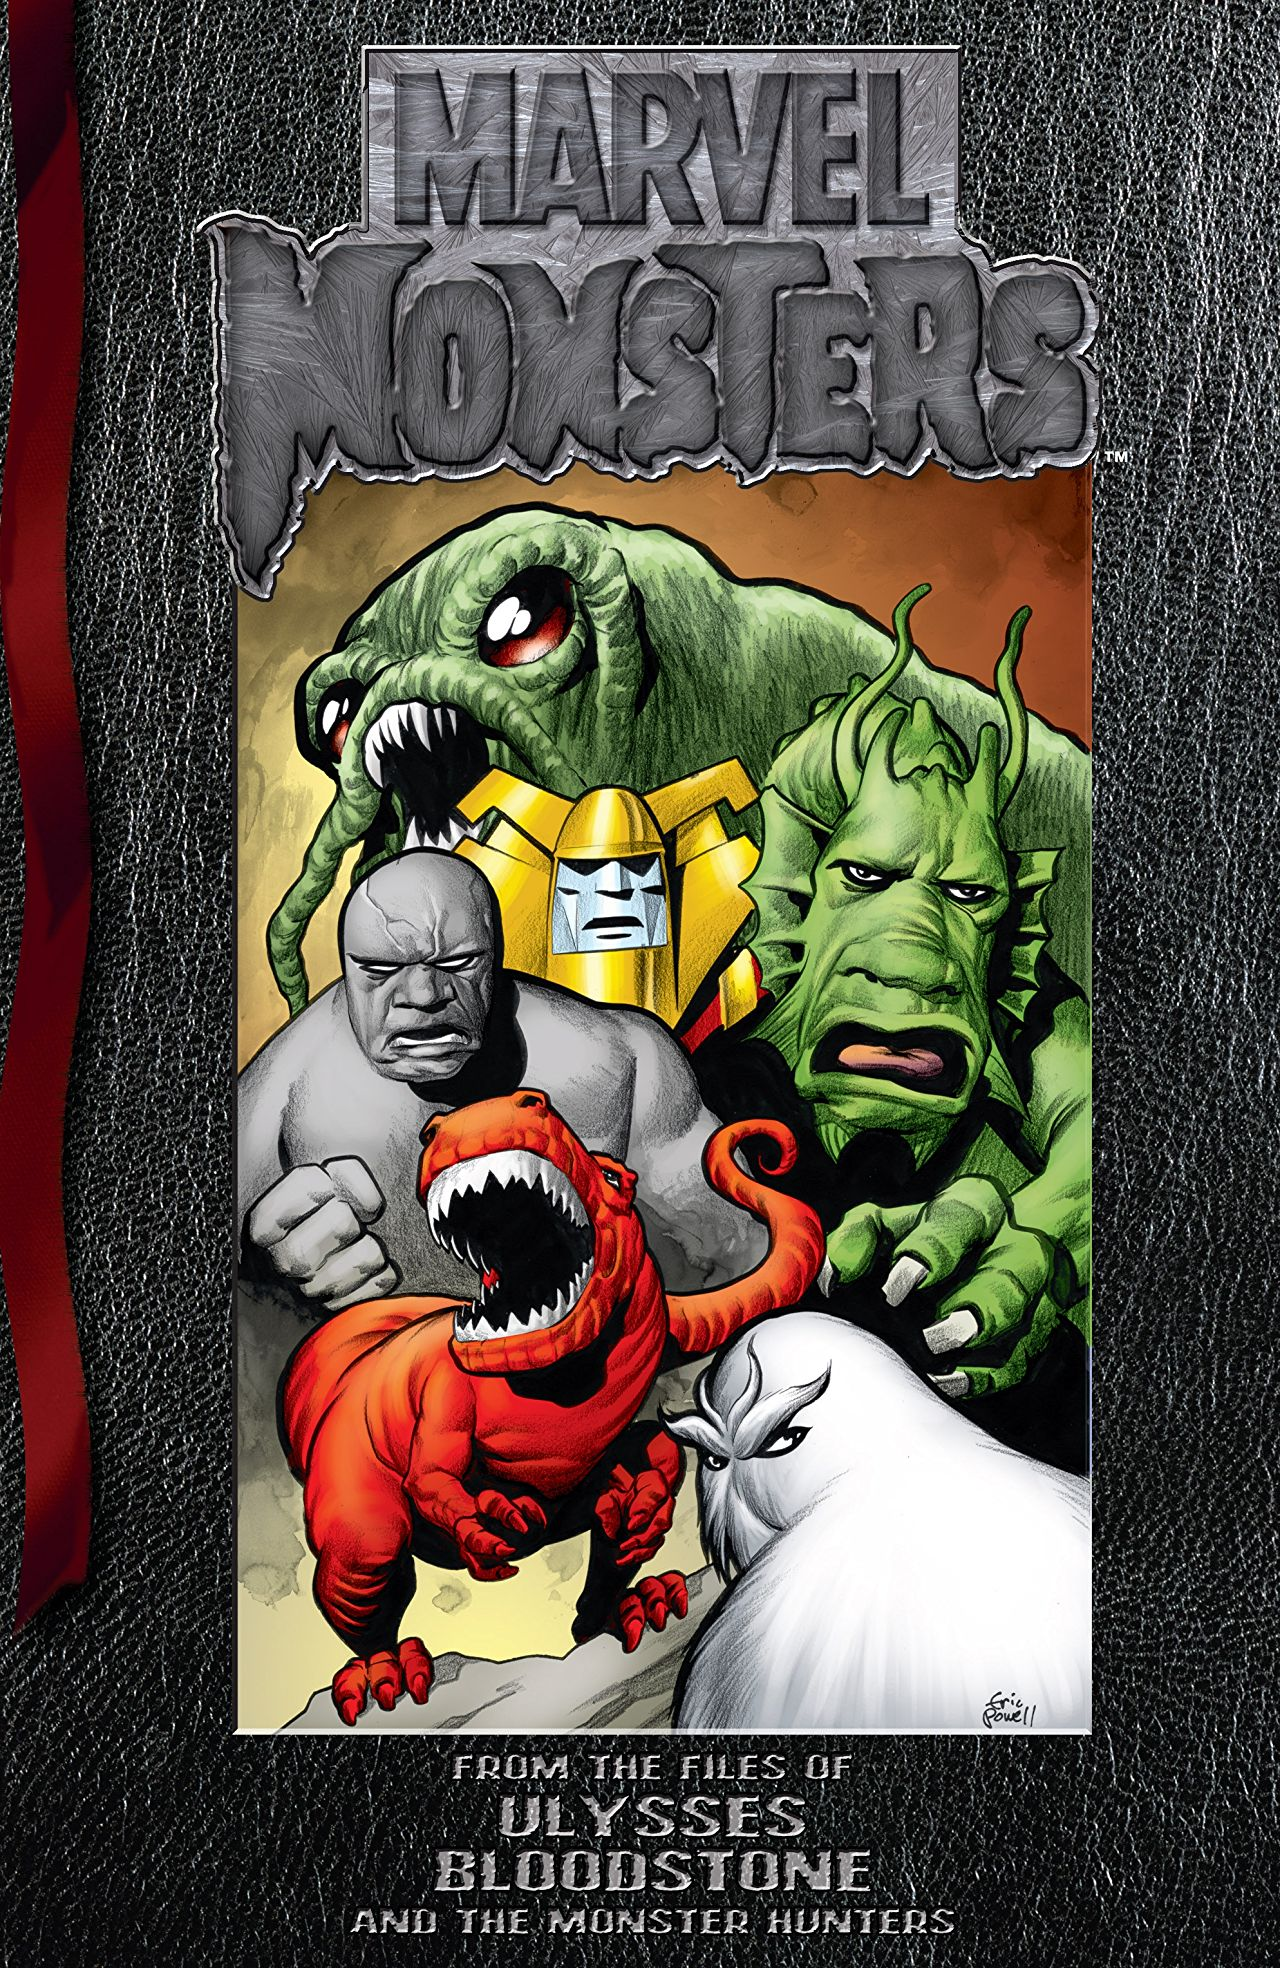 Marvel Monsters: From the Files of Ulysses Bloodstone (and the Monster Hunters) Vol 1 1